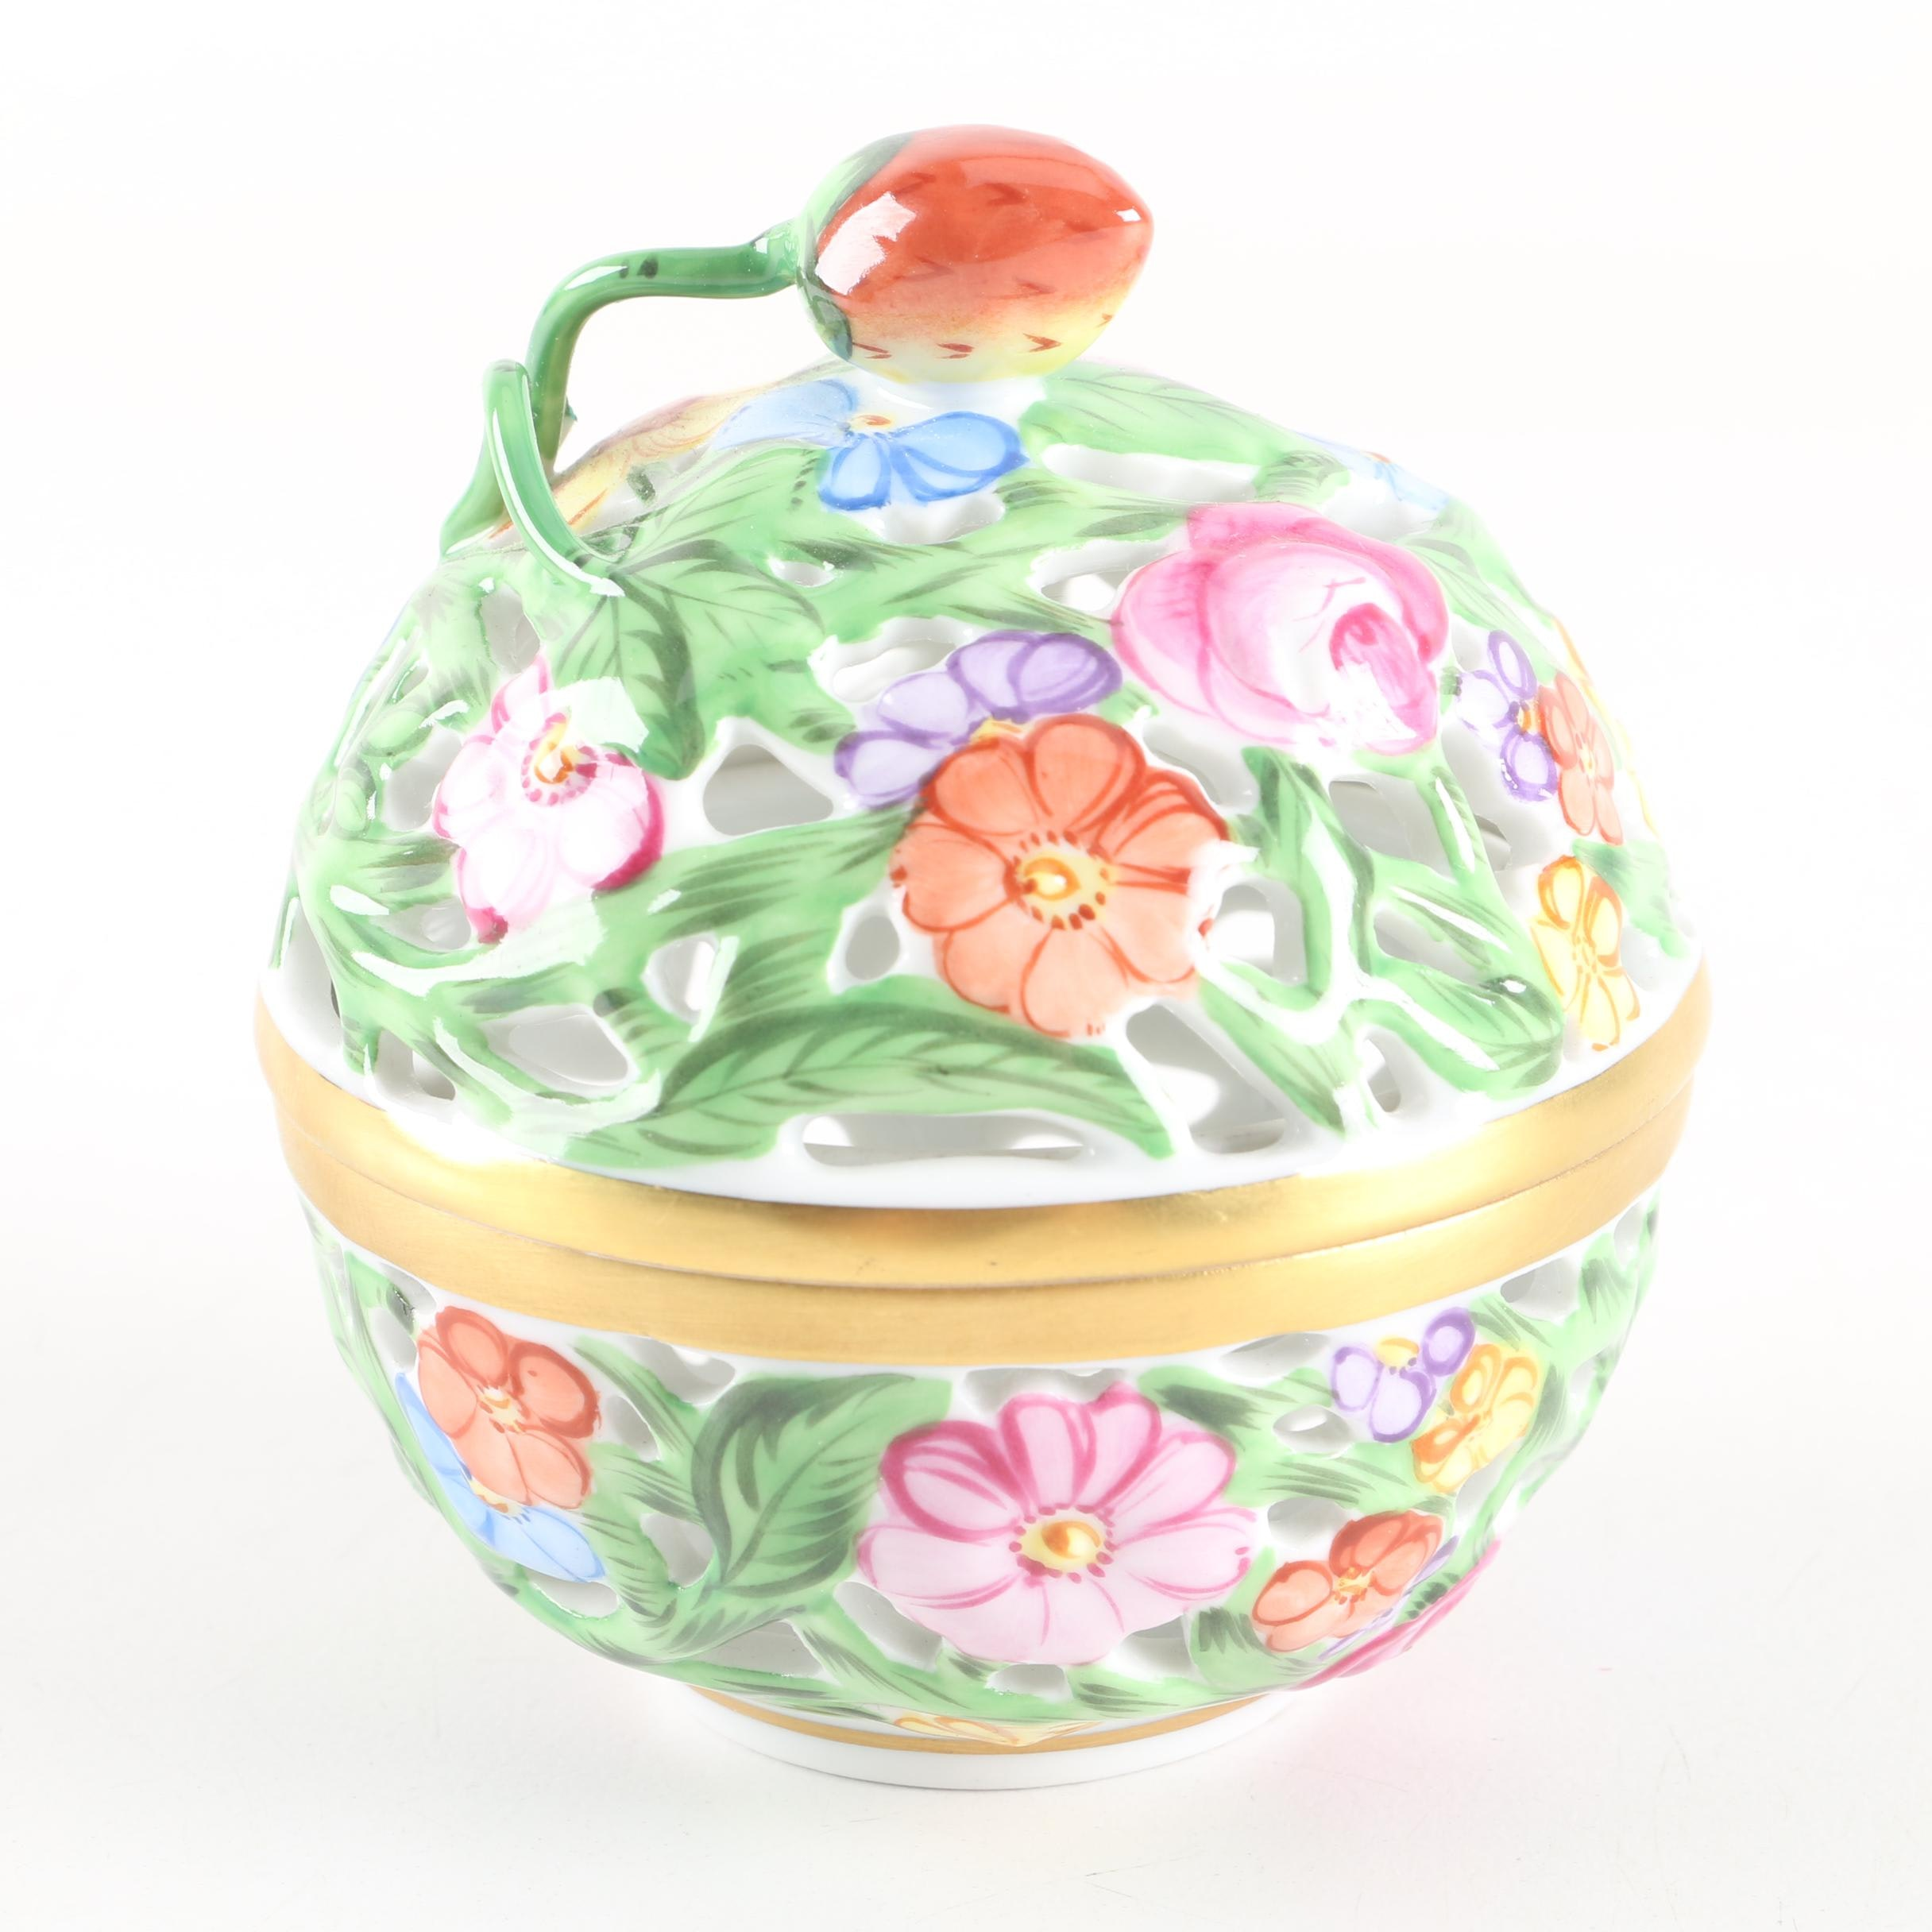 Herend Hand-Painted Reticulated Porcelain Trinket Box